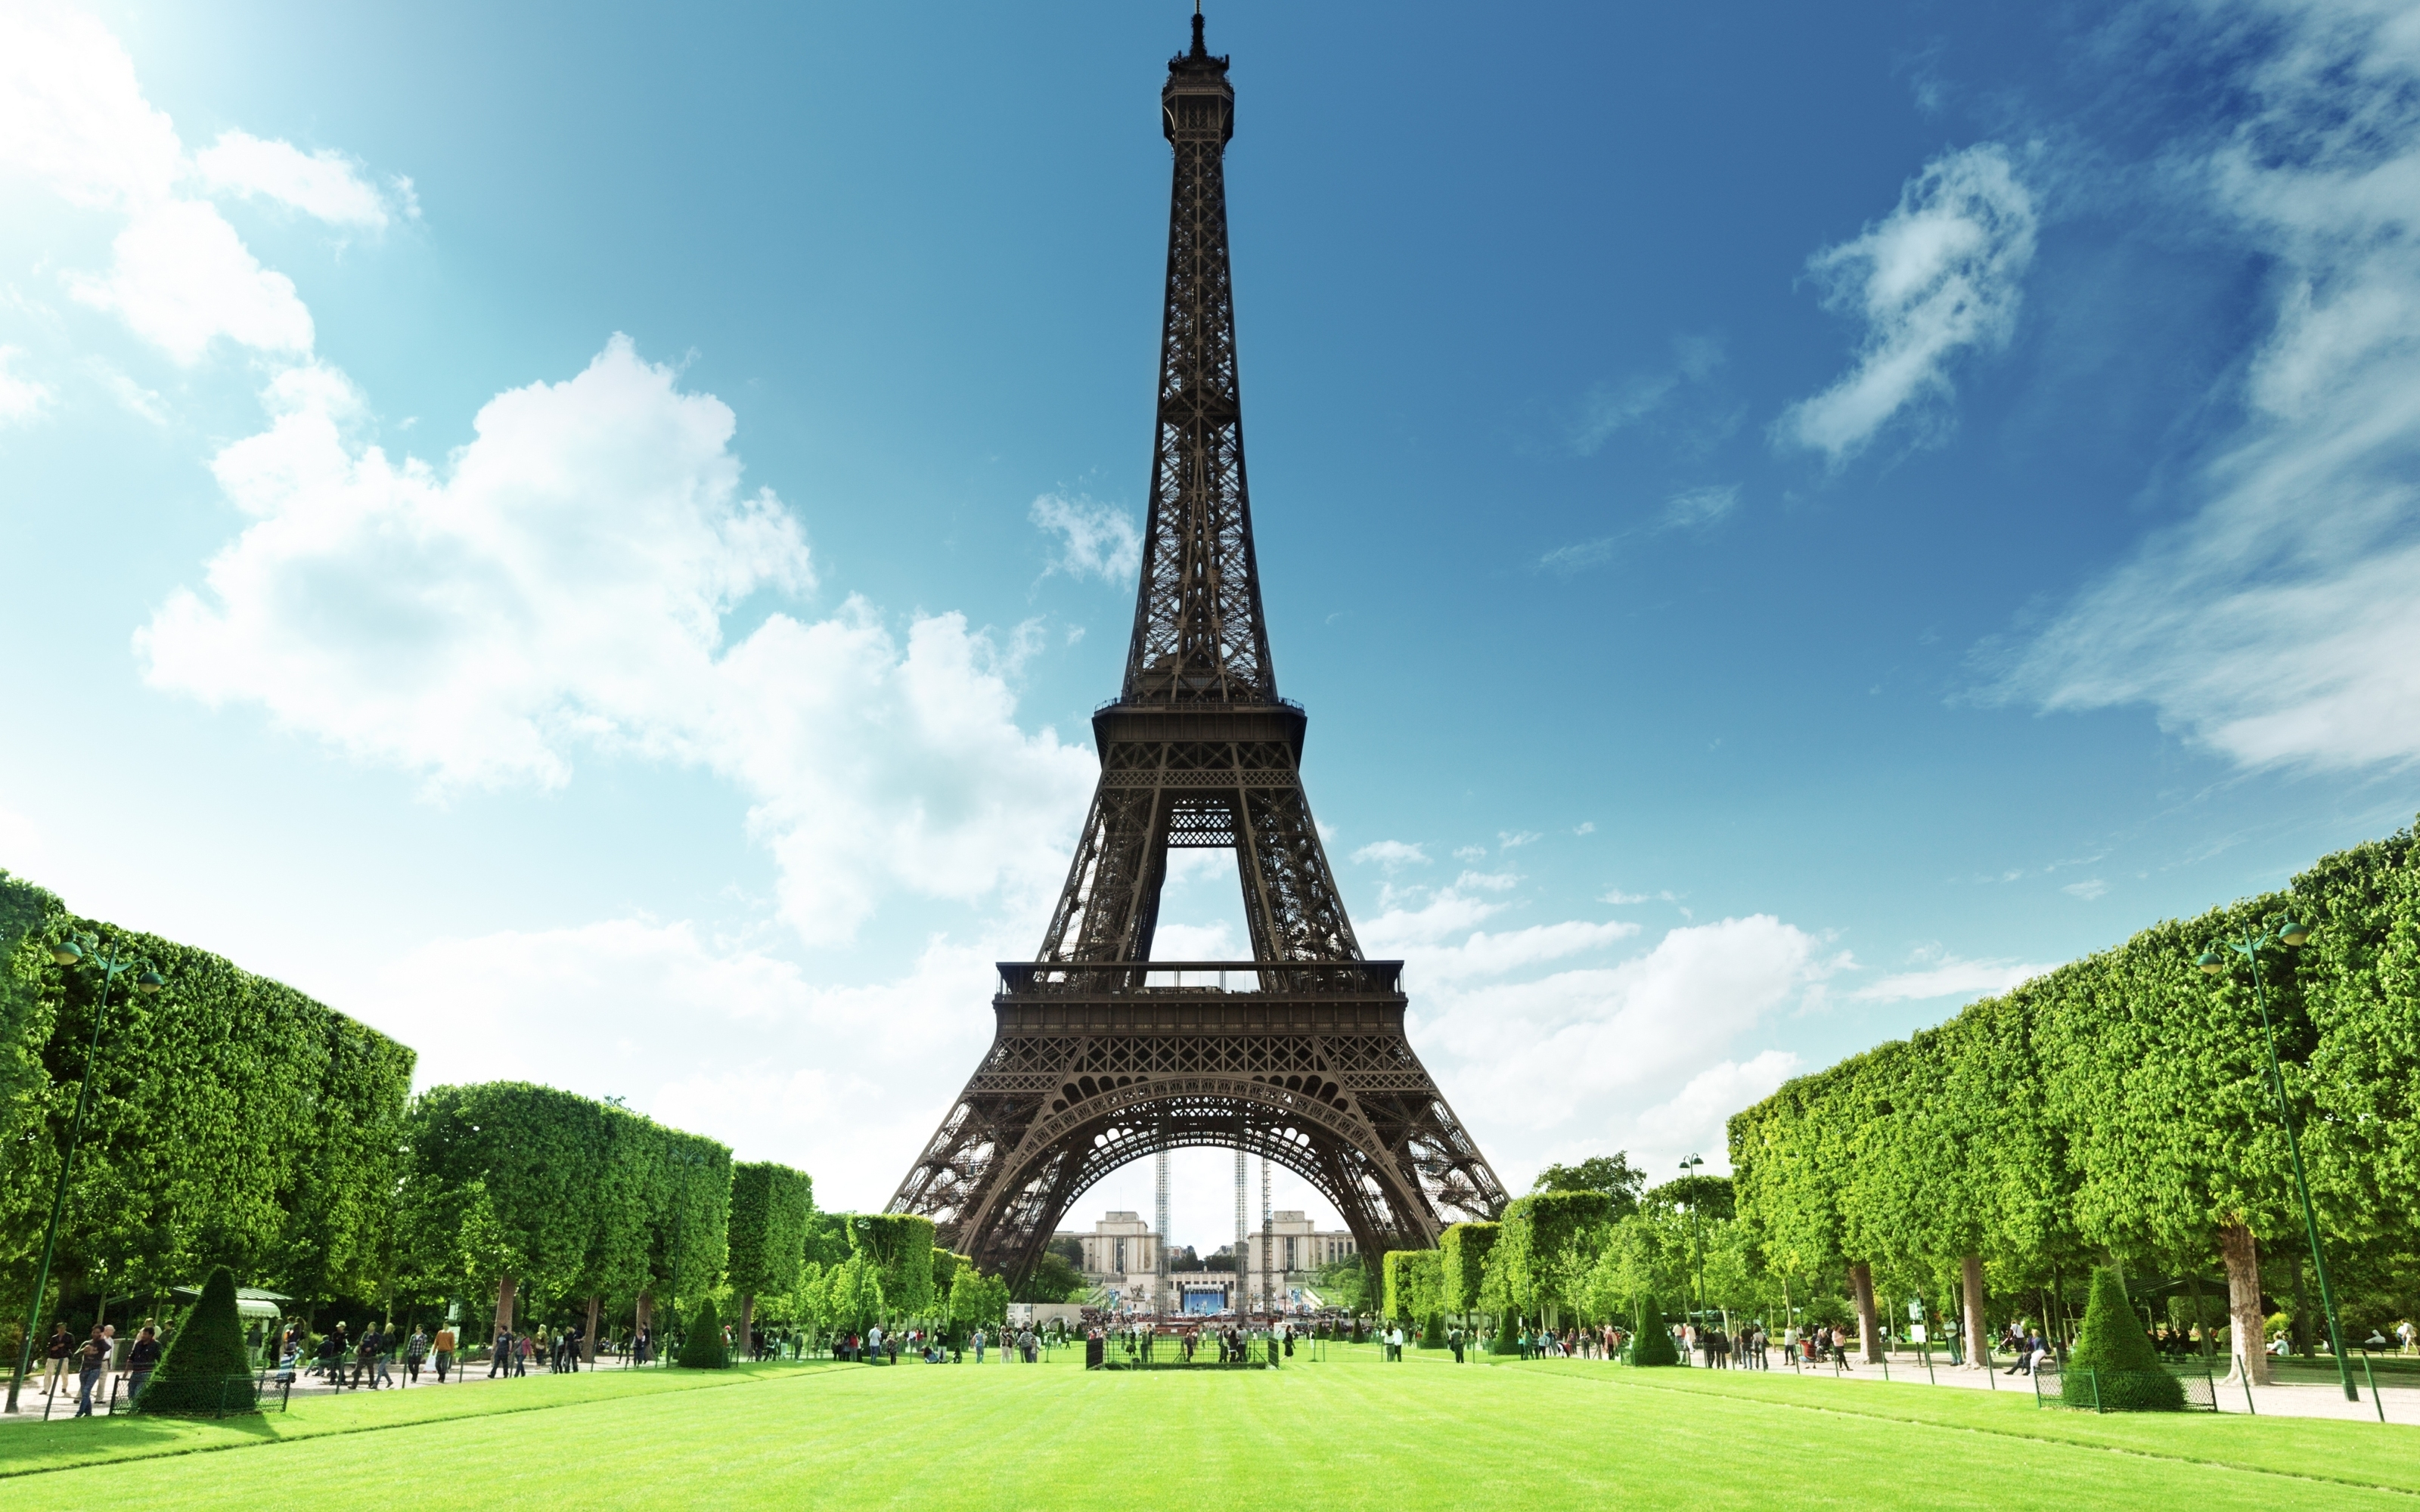 247 eiffel tower hd wallpapers | background images - wallpaper abyss